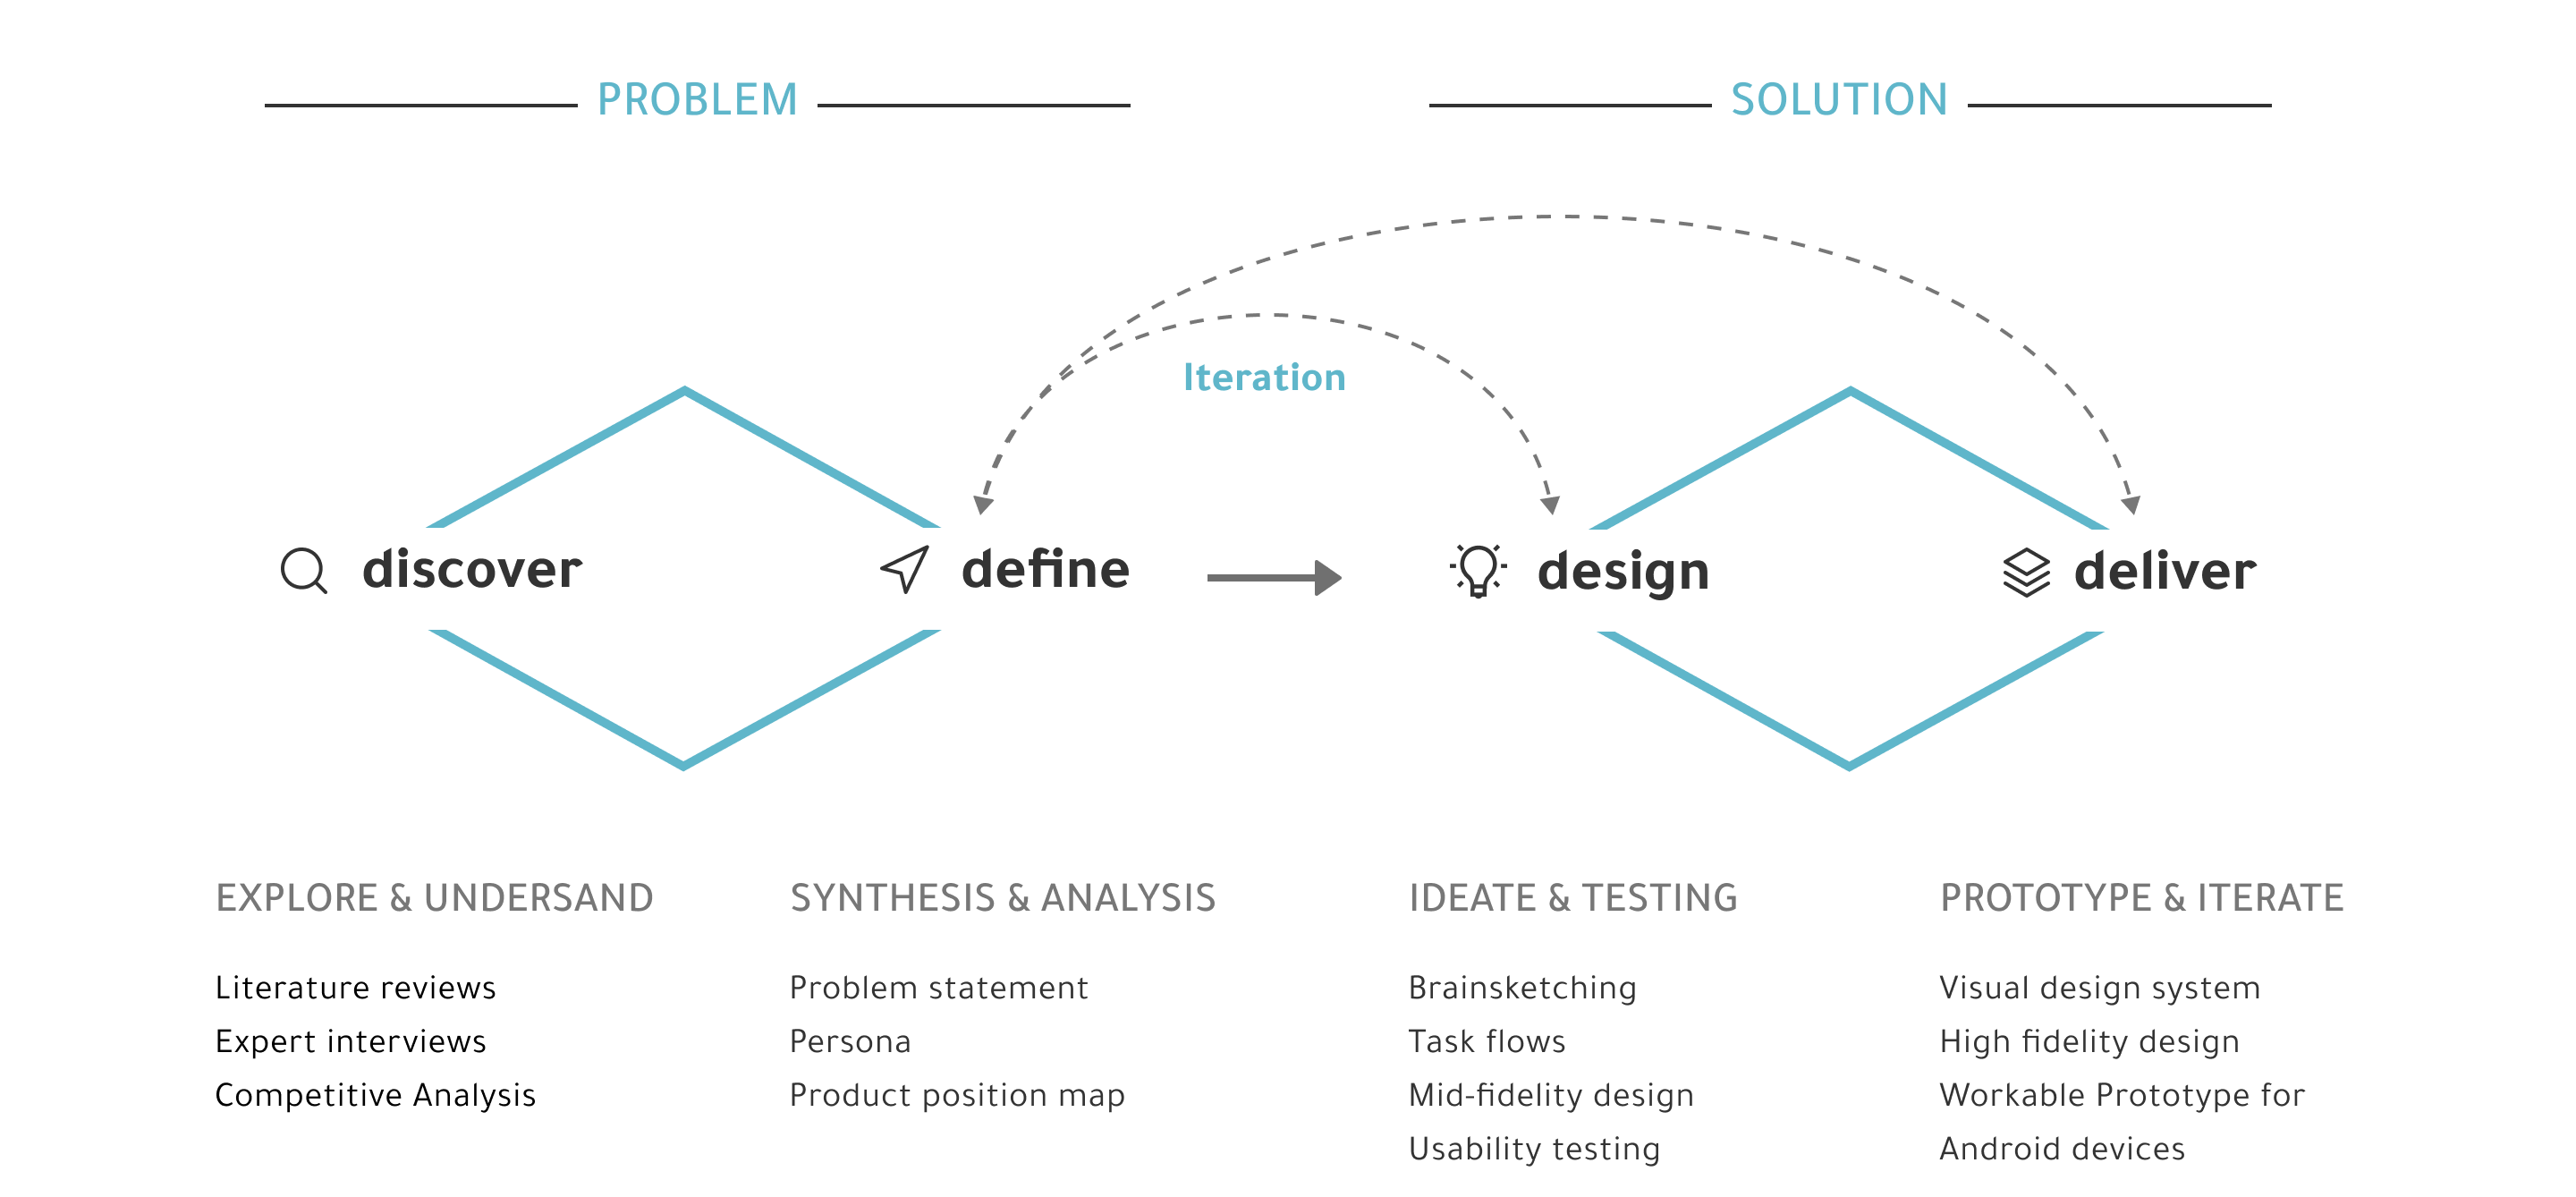 design approach image